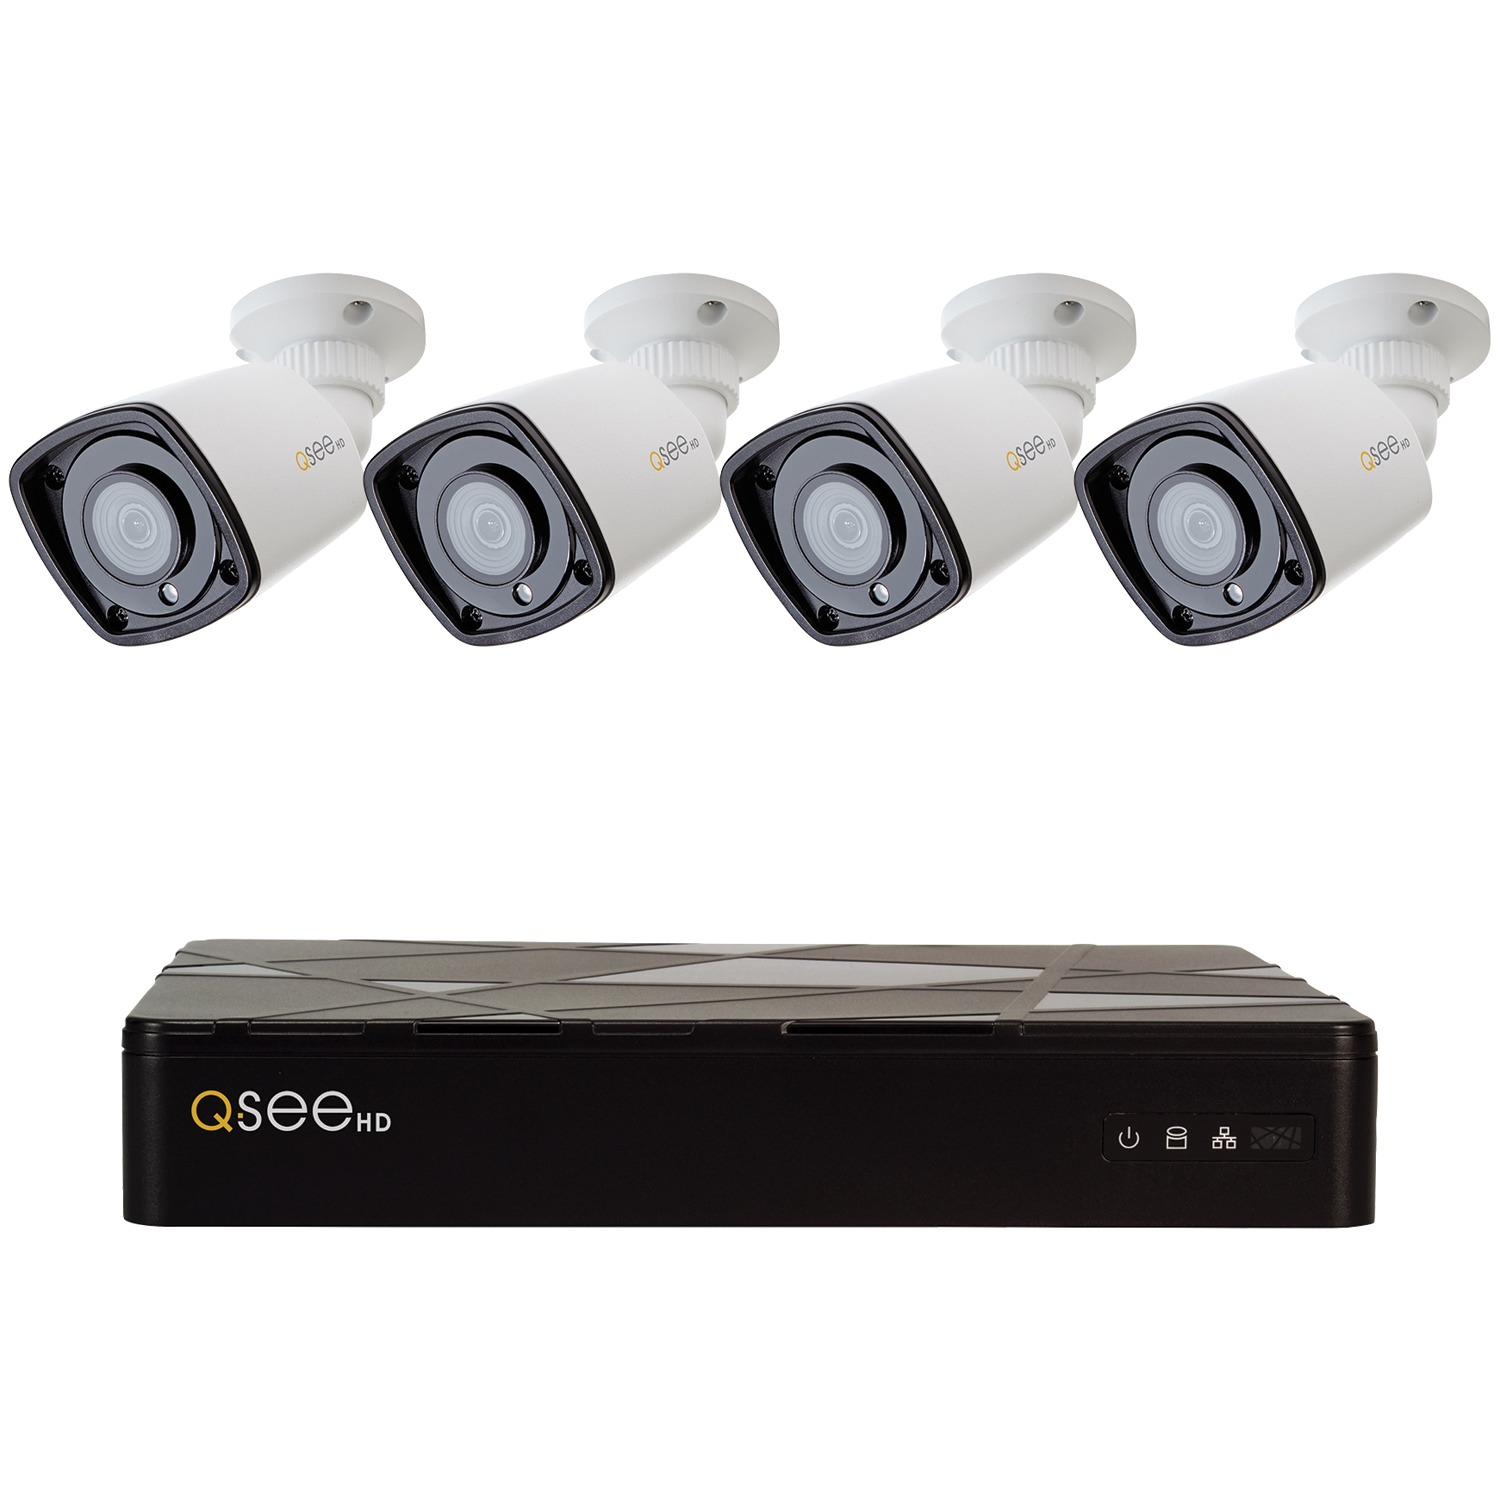 8-Channel 1080p 2TB NVR with 4 1080p IP HD Color Night Vision Bullet Cameras